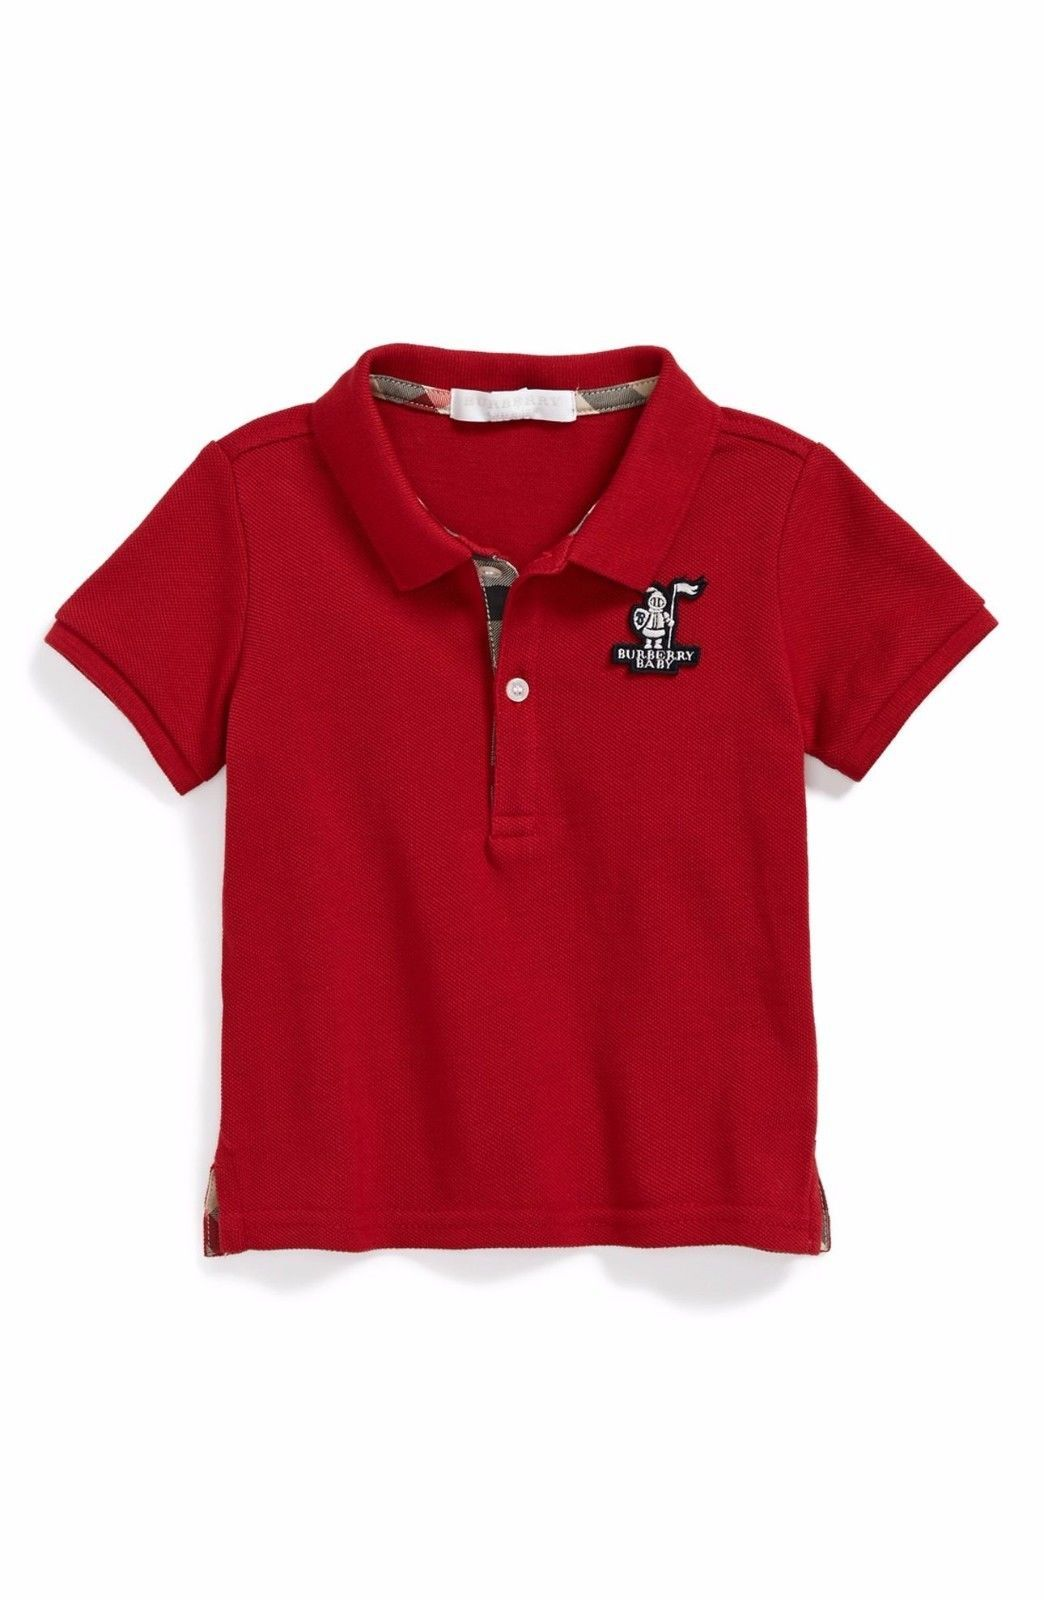 1ed68217b06686 Tops and T-Shirts 147340: Burberry Baby Palmer Pique Polo Shirt Military  Red Top Boys Nwt 18 Months -> BUY IT NOW ONLY: $49.99 on eBay!